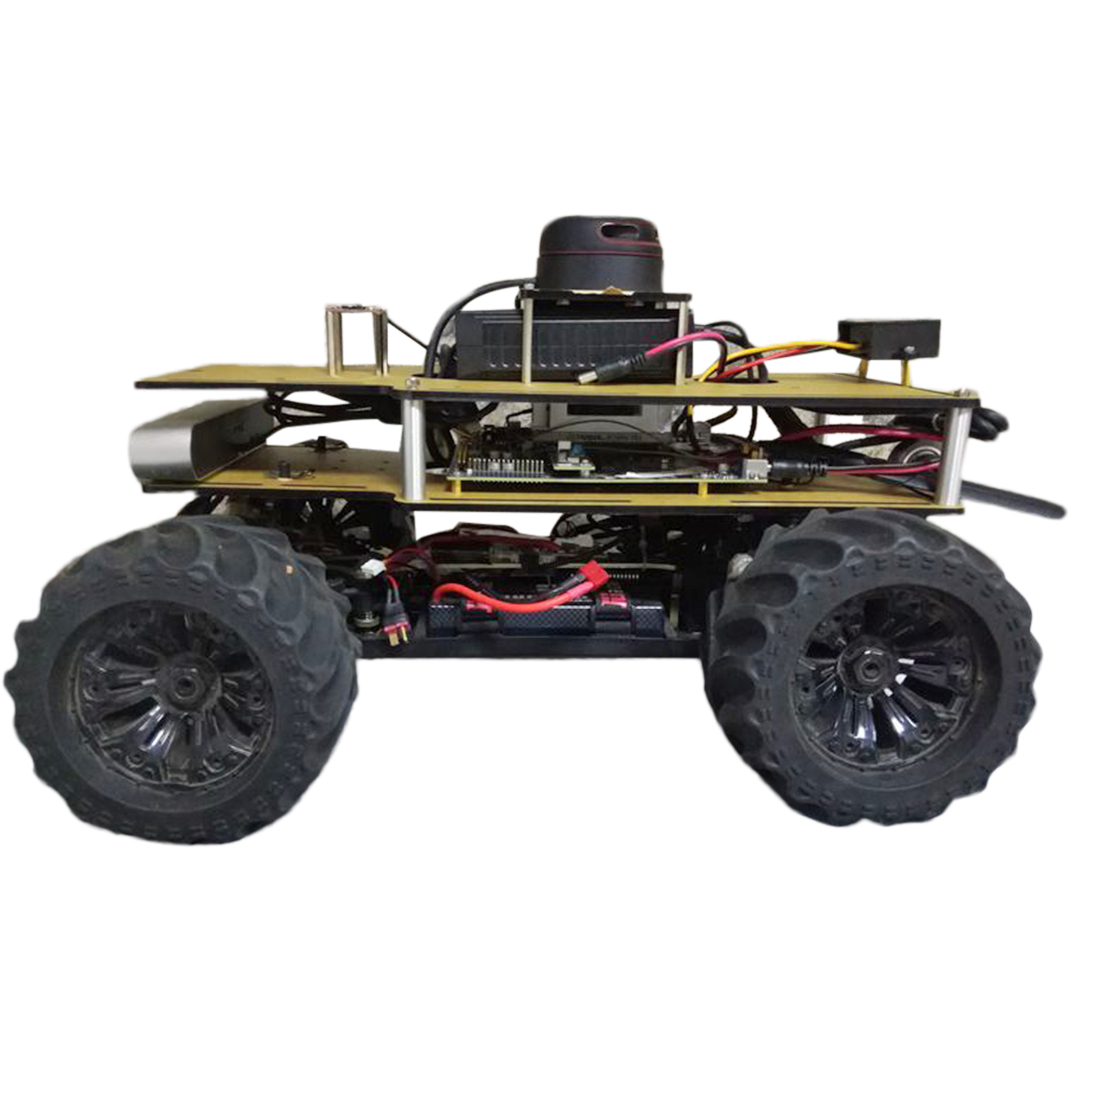 1/10 Programmable ROS Robot Ackerman Suspension Autopilot Ride Kit For Jetson TX2 Programmable Toys For Kids Adults Gift